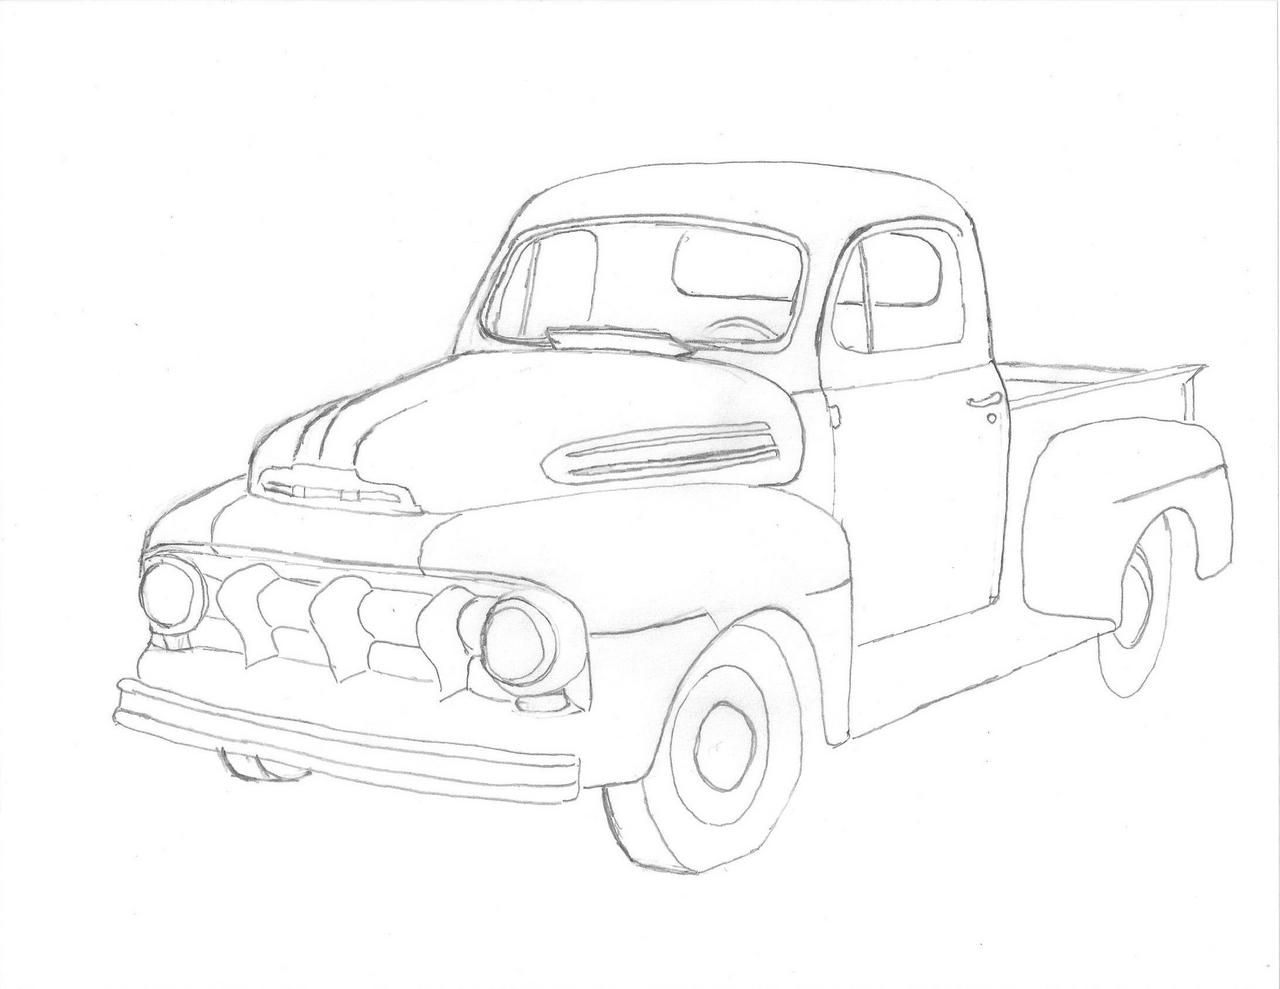 Line drawing old ford pickup truck google search 1 line drawings for embroidery and applique pinterest ford pickup trucks